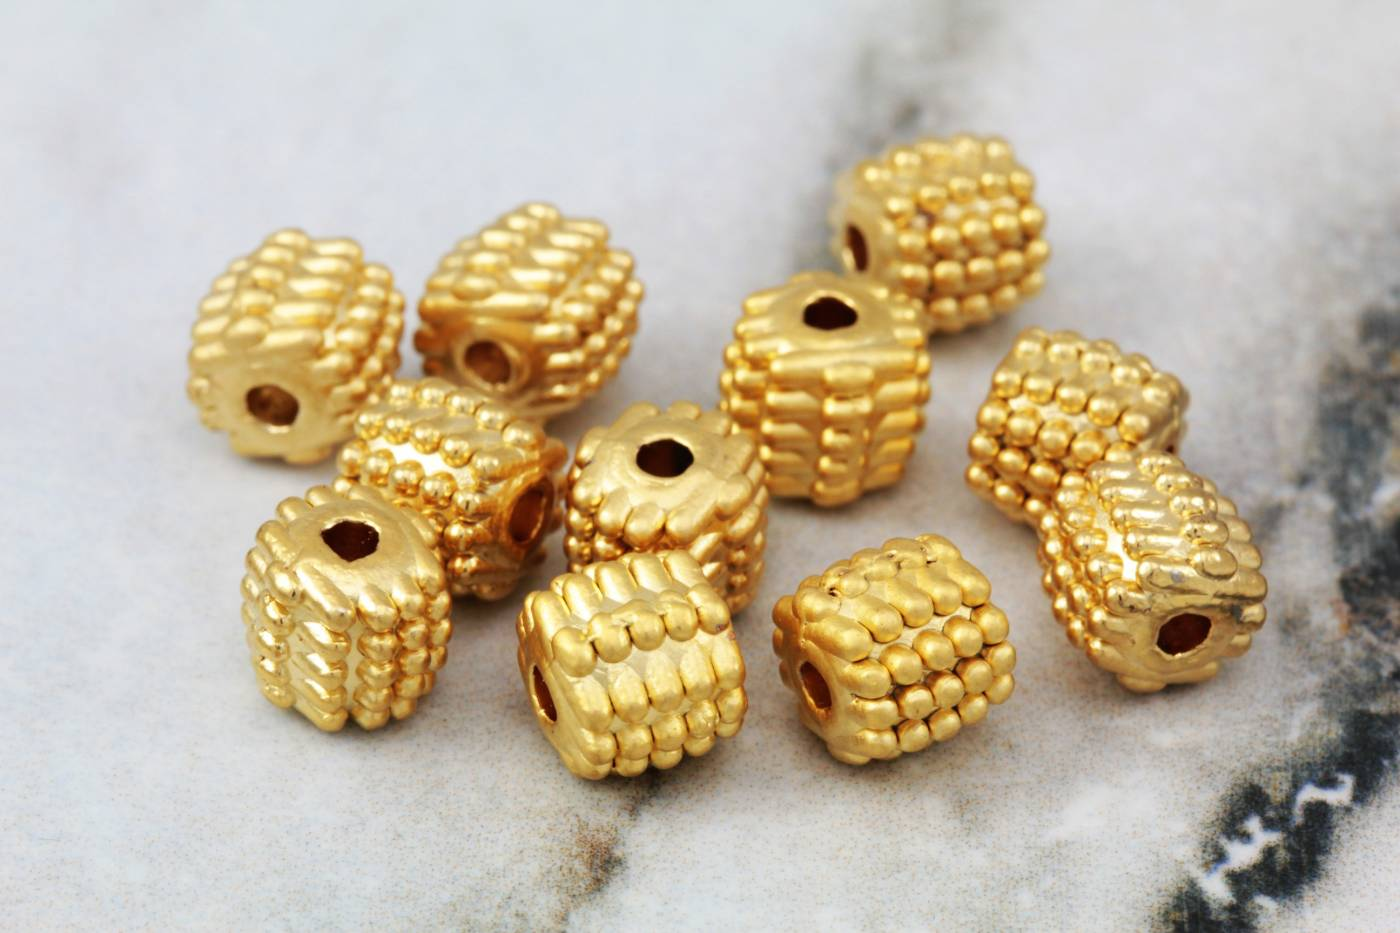 gold-plated-barrel-spacer-bead-findings.jpg